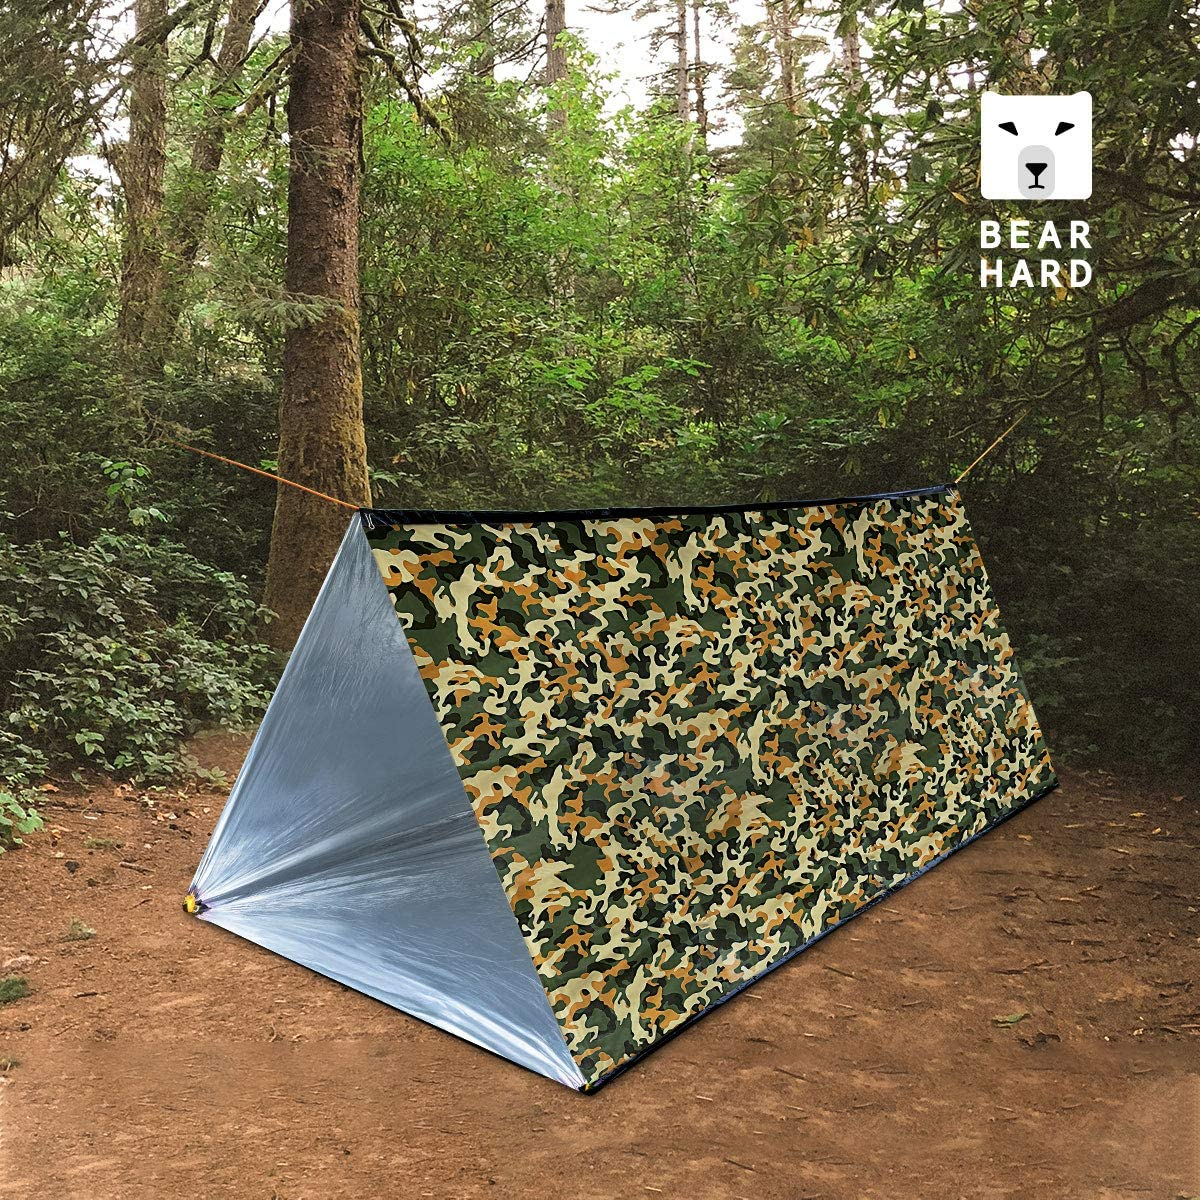 NASA Survival or First Aid Hiking Bearhard Emergency Tent Large Lightweight Compact Rescue PE Tube Tent Foil Survival Tent Shelter for Camping Outdoor